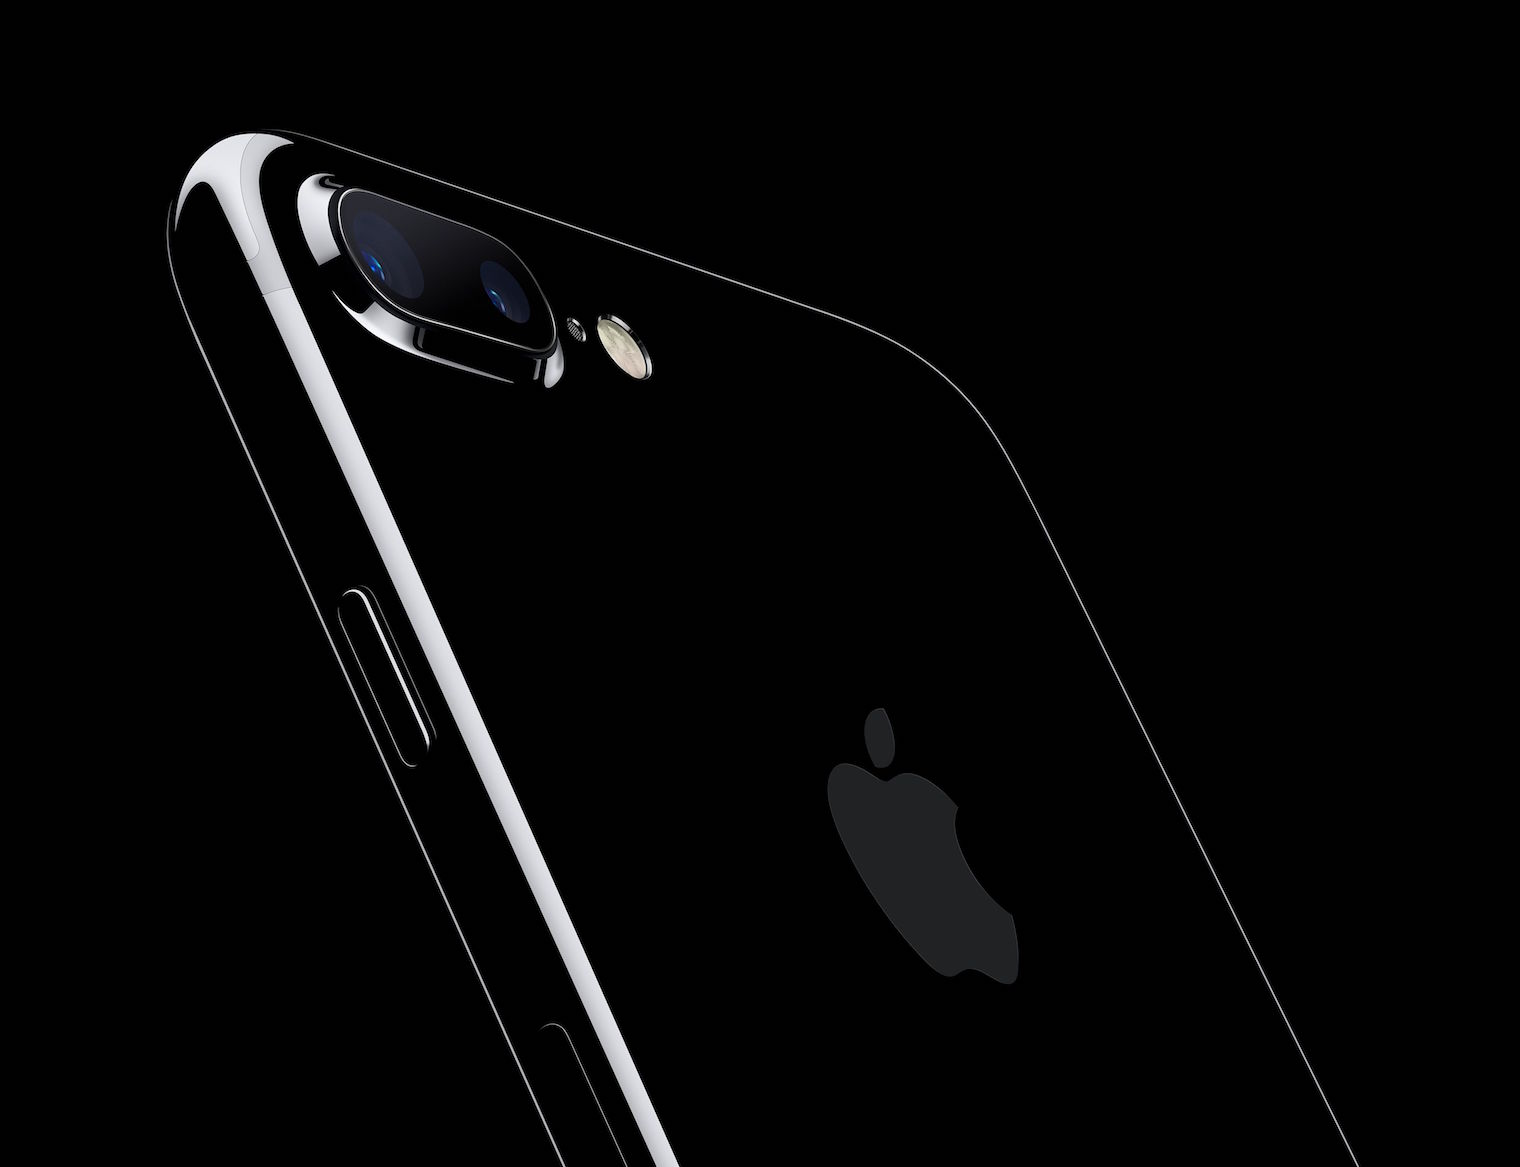 iphone7-gallery1-2016-2